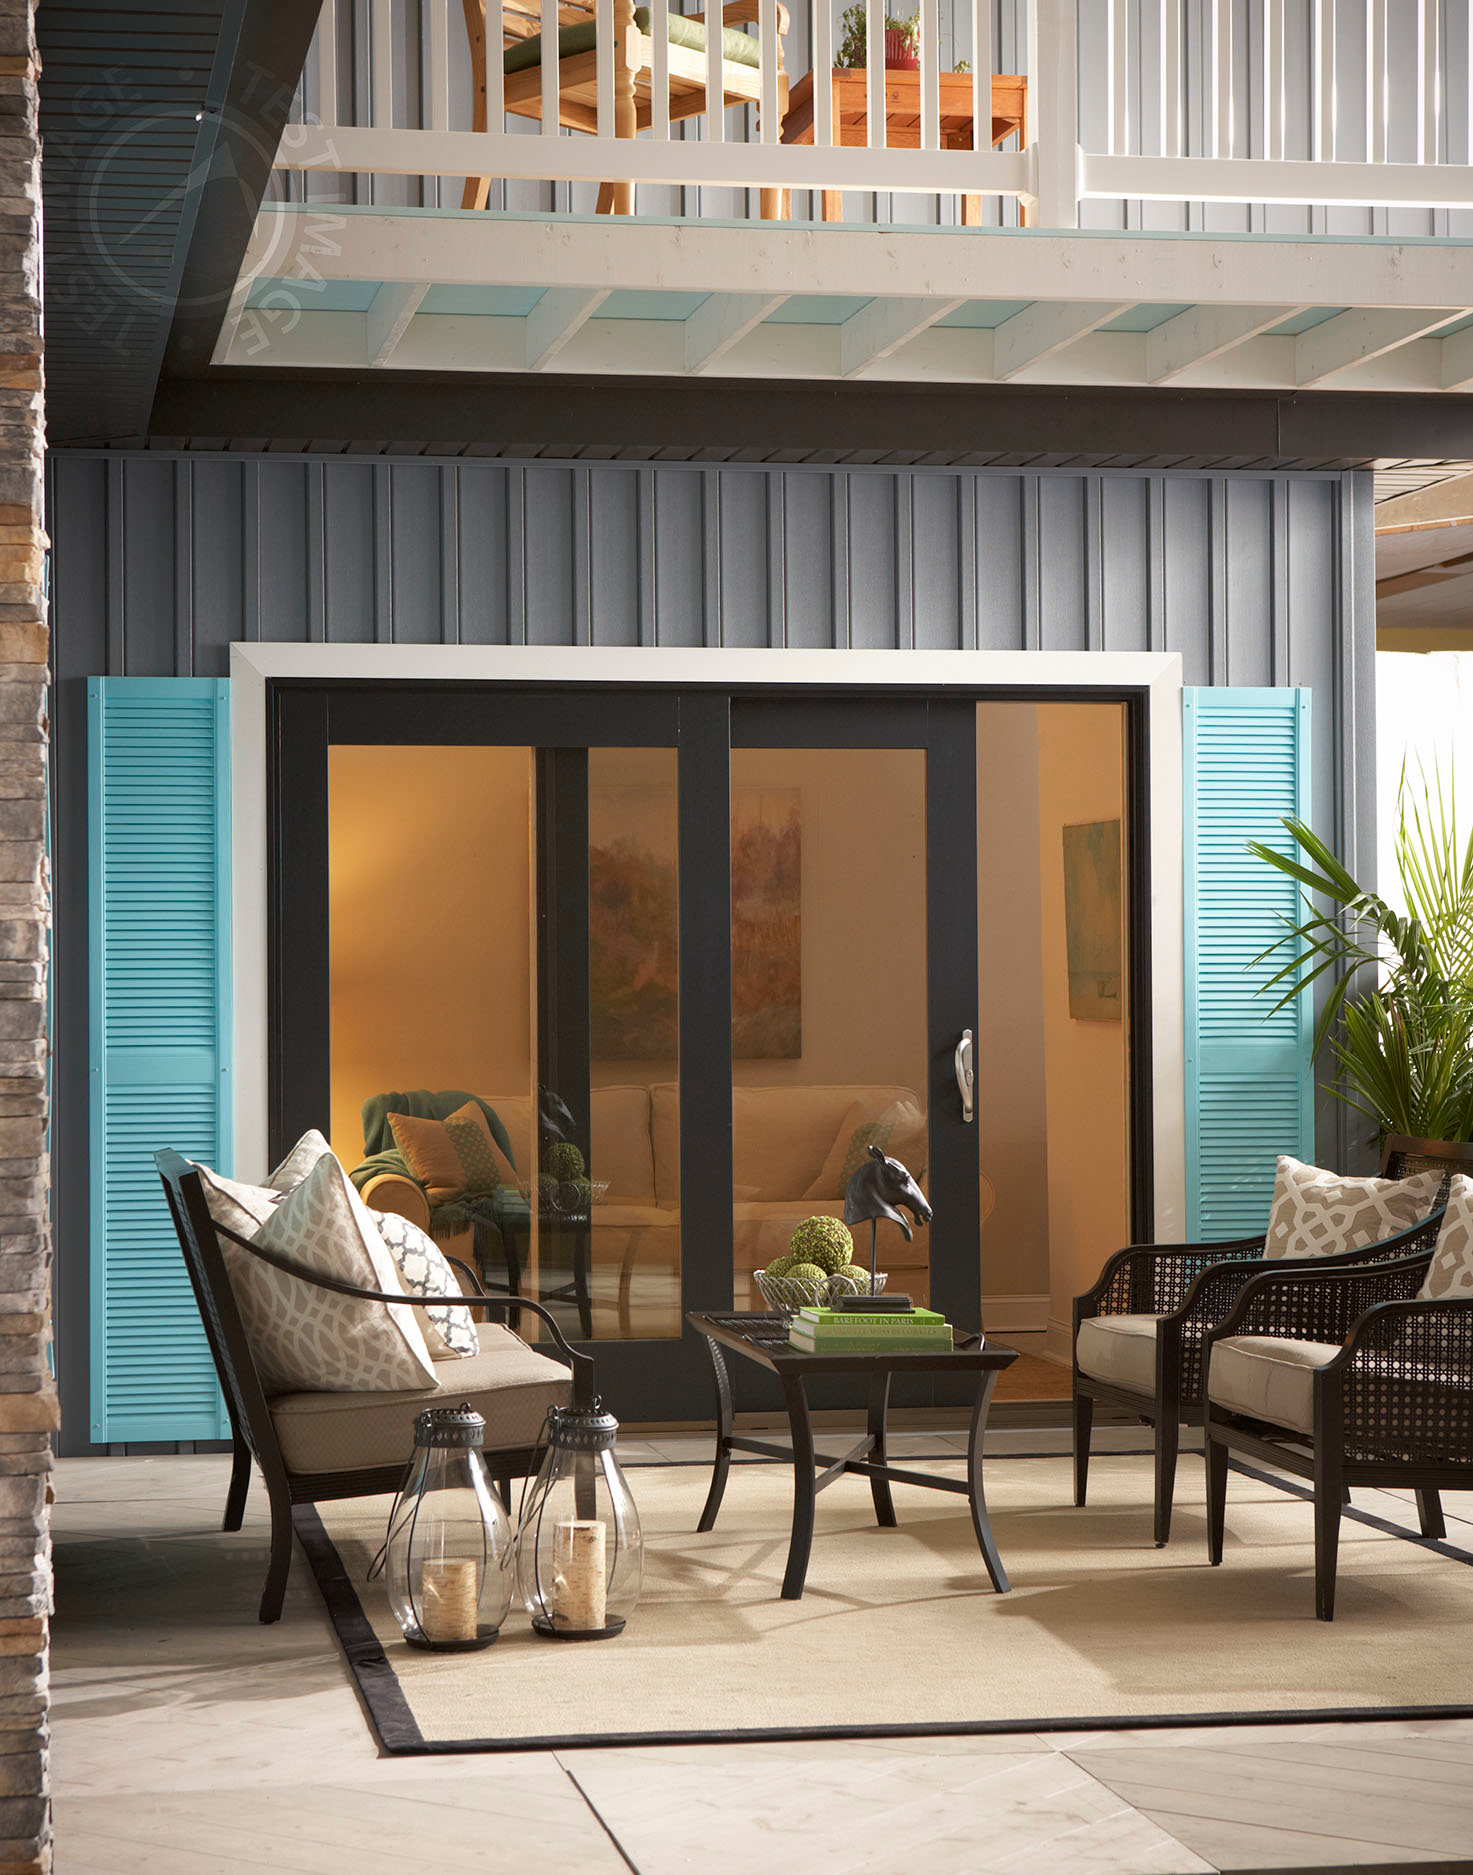 Ply Gem Patio Doors: Sliding Patio Doors With Storm Protection